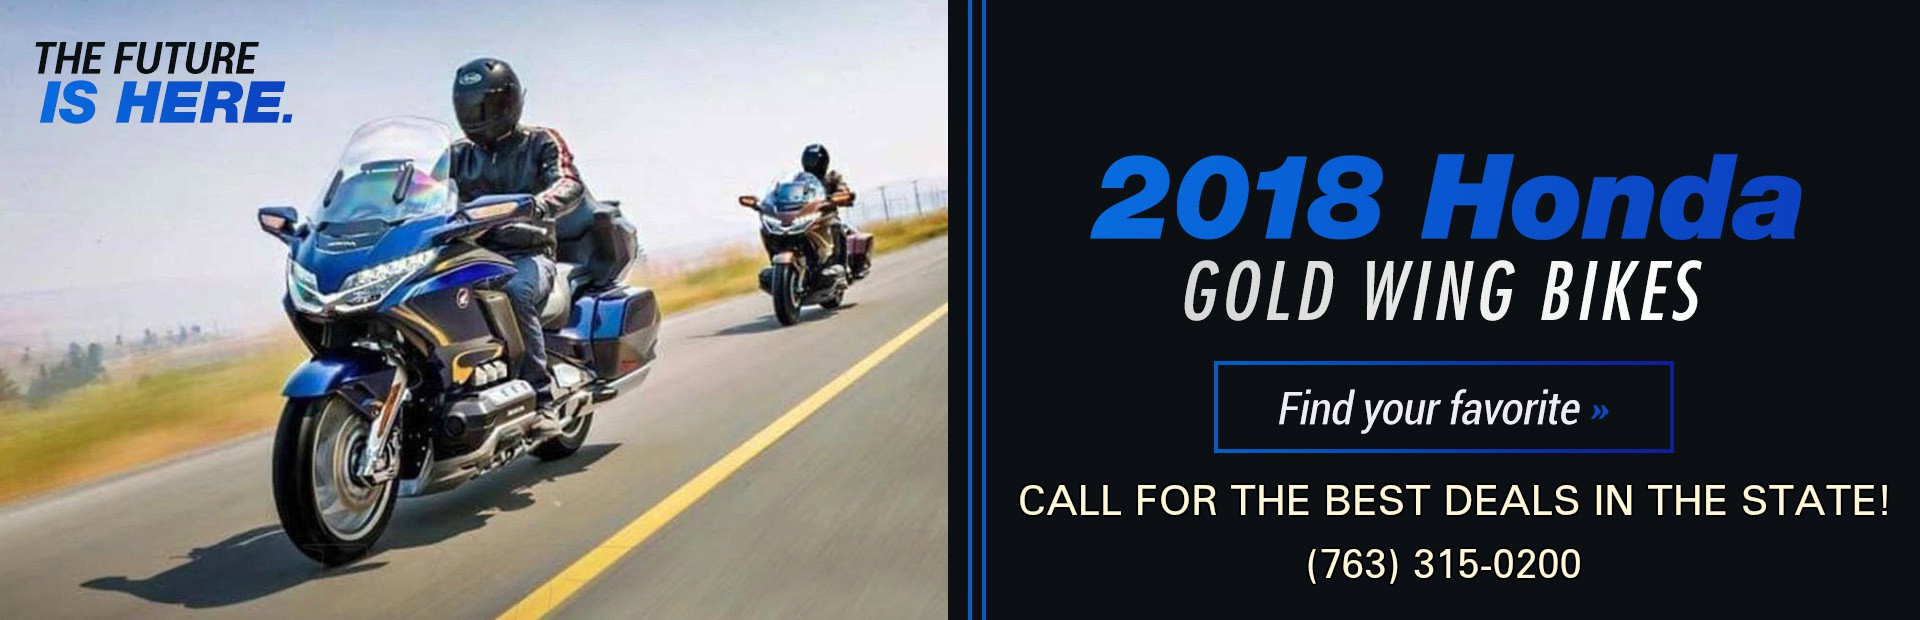 2018 Honda Gold Wing Bikes: Click here to view the models.